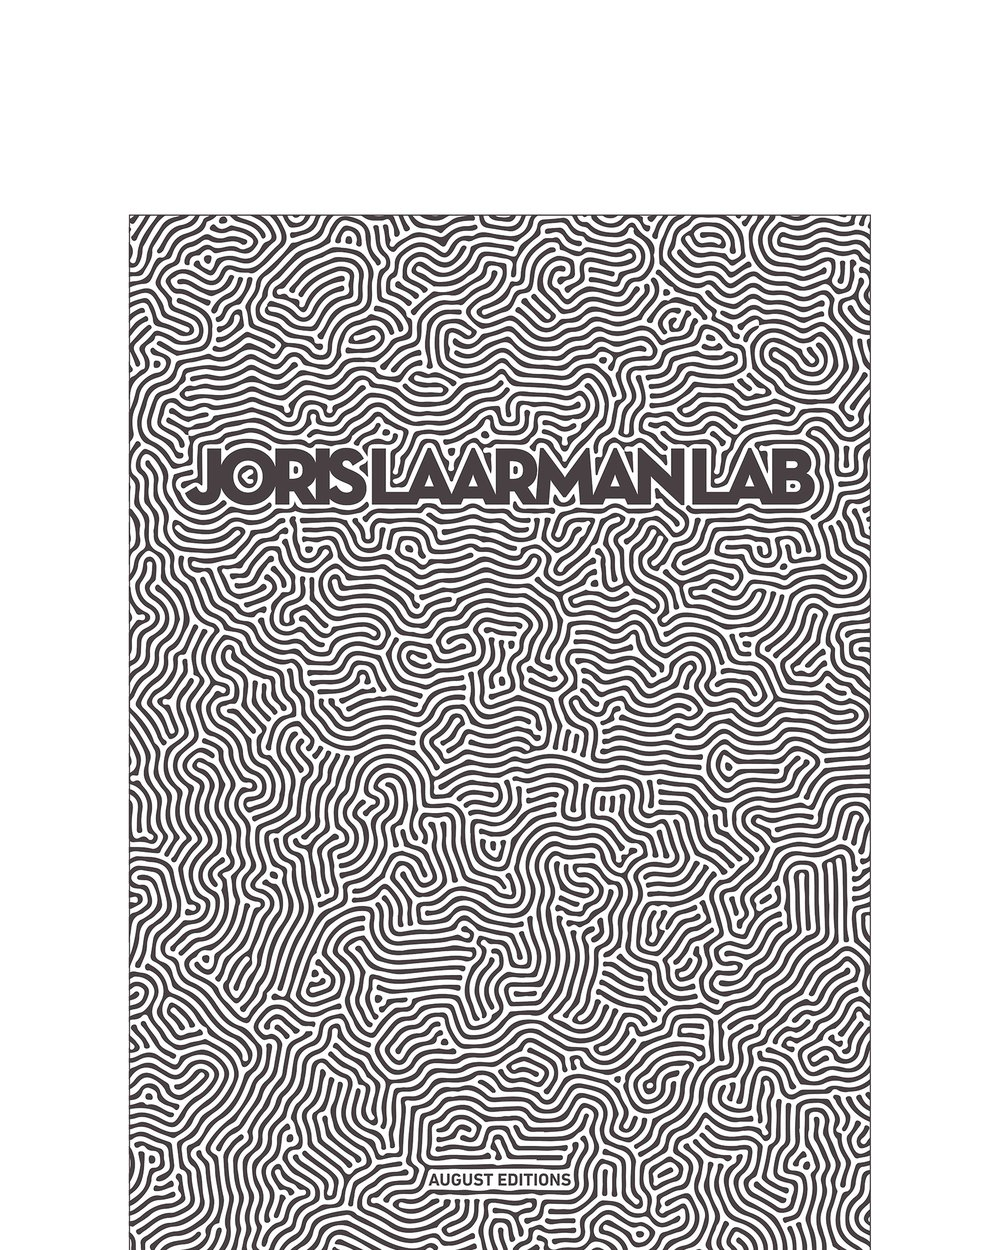 JORIS_LAARMAN_cover-website homepage.jpg